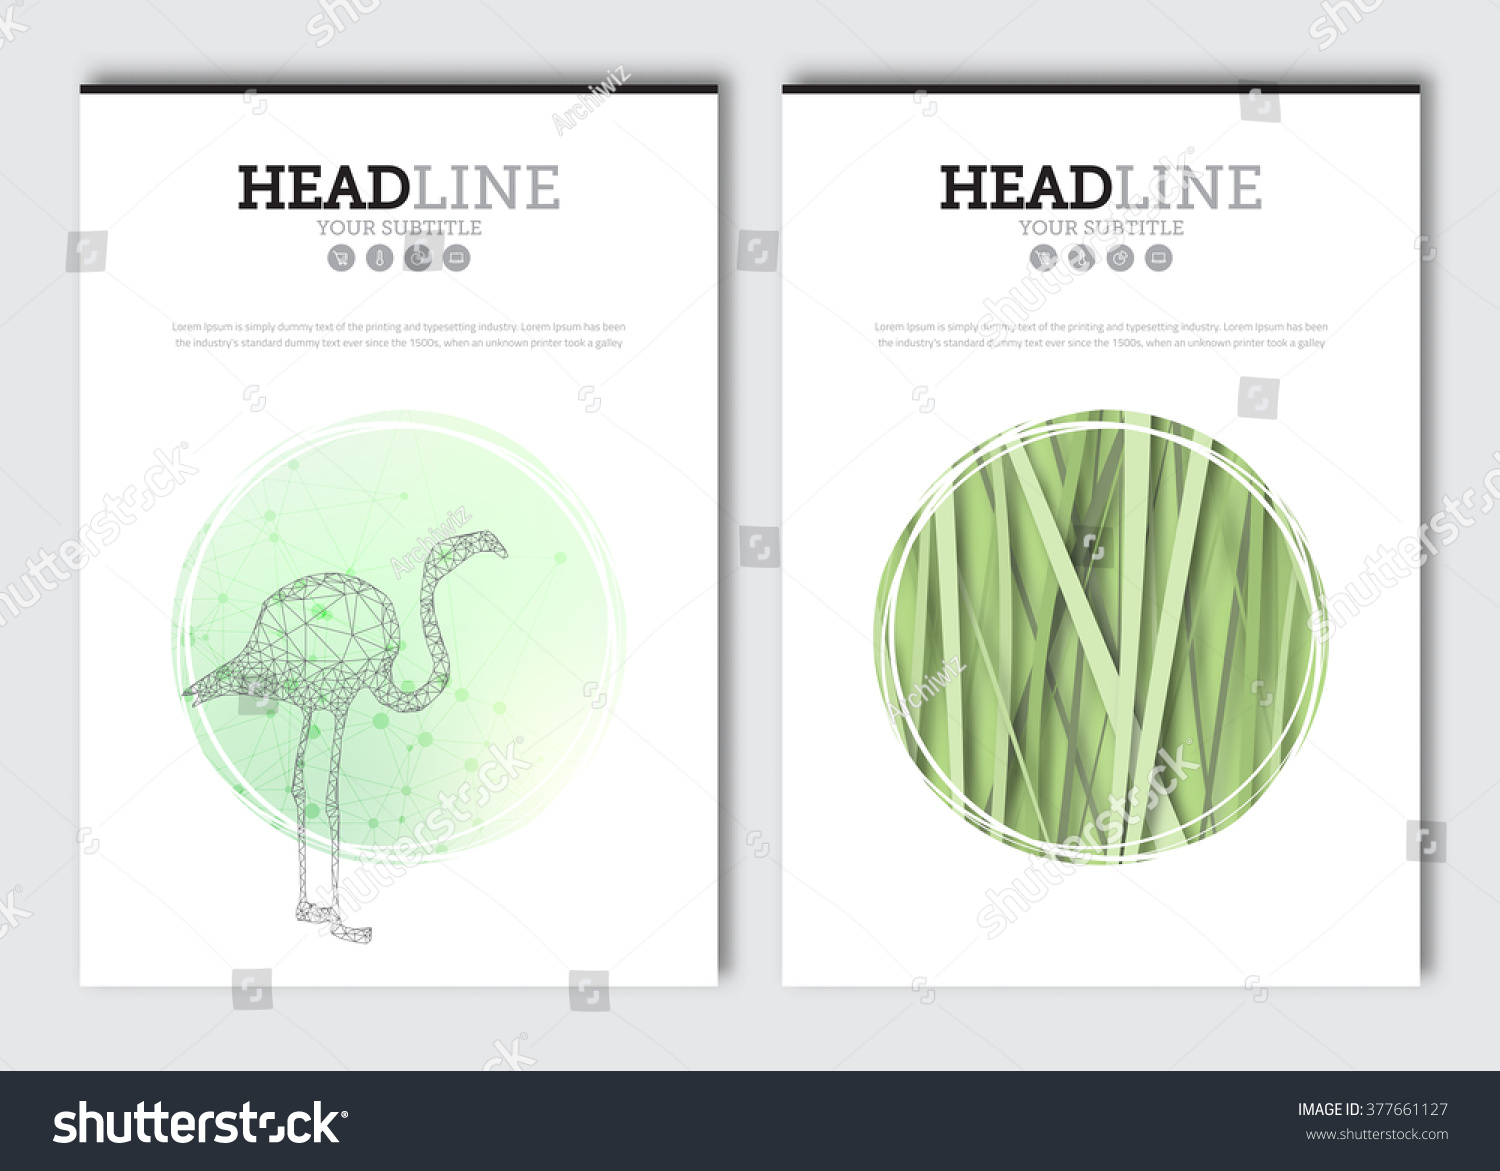 agriculture brochure templates free - business brochure design template vector flyer stock